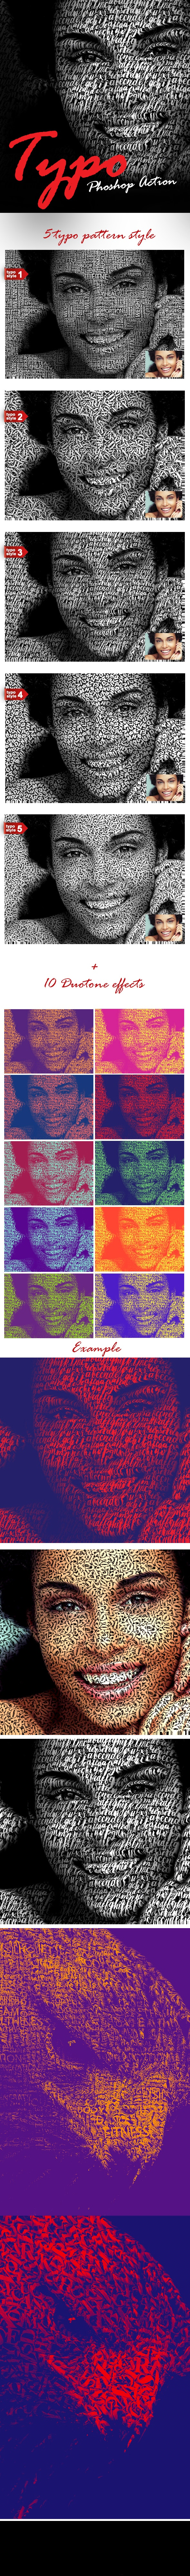 Typography Portrait Photoshop Action - Photo Effects Actions